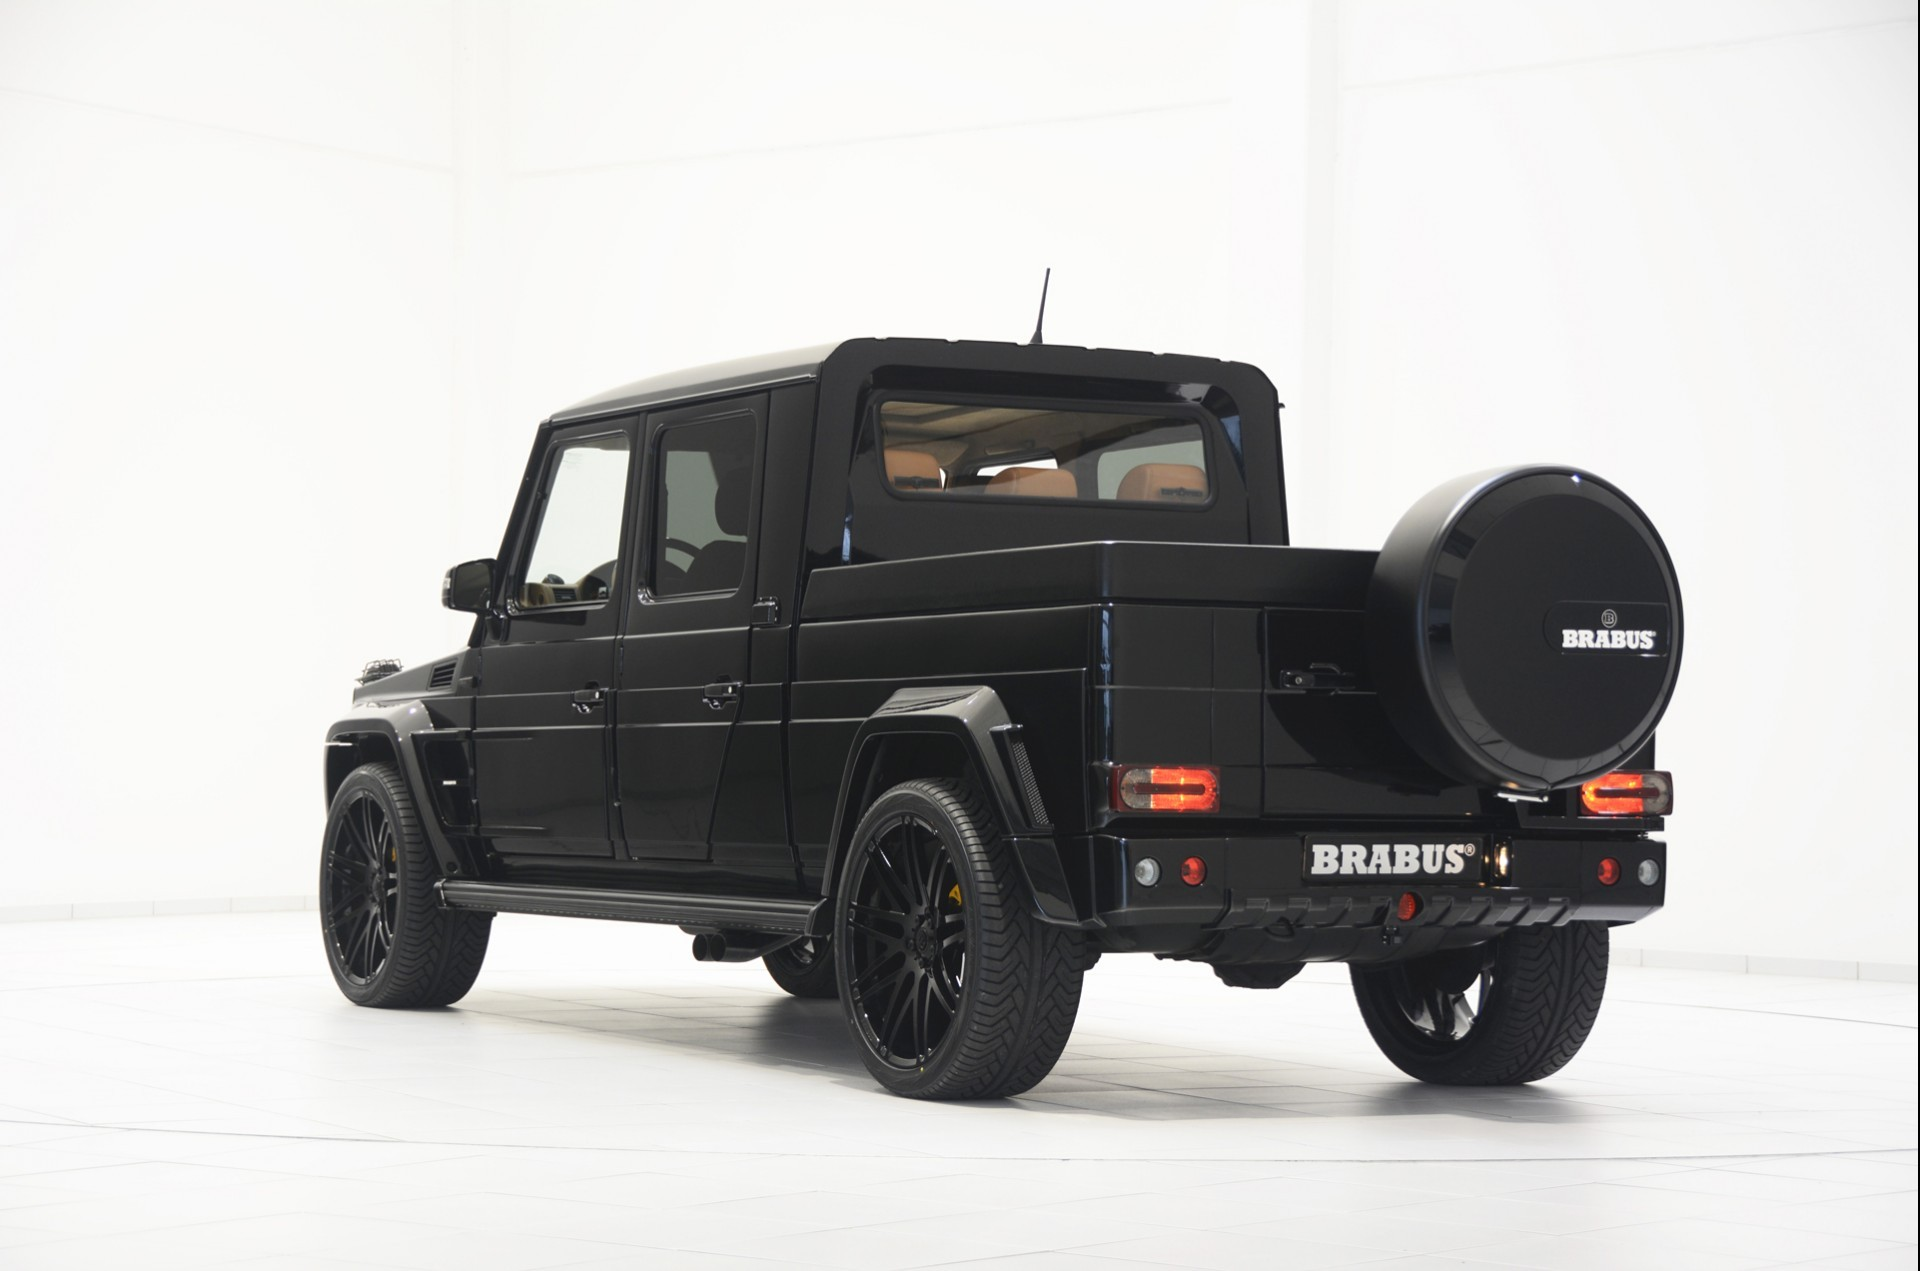 brabus g500 xxl pickup truck is very large wide and cool autoevolution. Black Bedroom Furniture Sets. Home Design Ideas